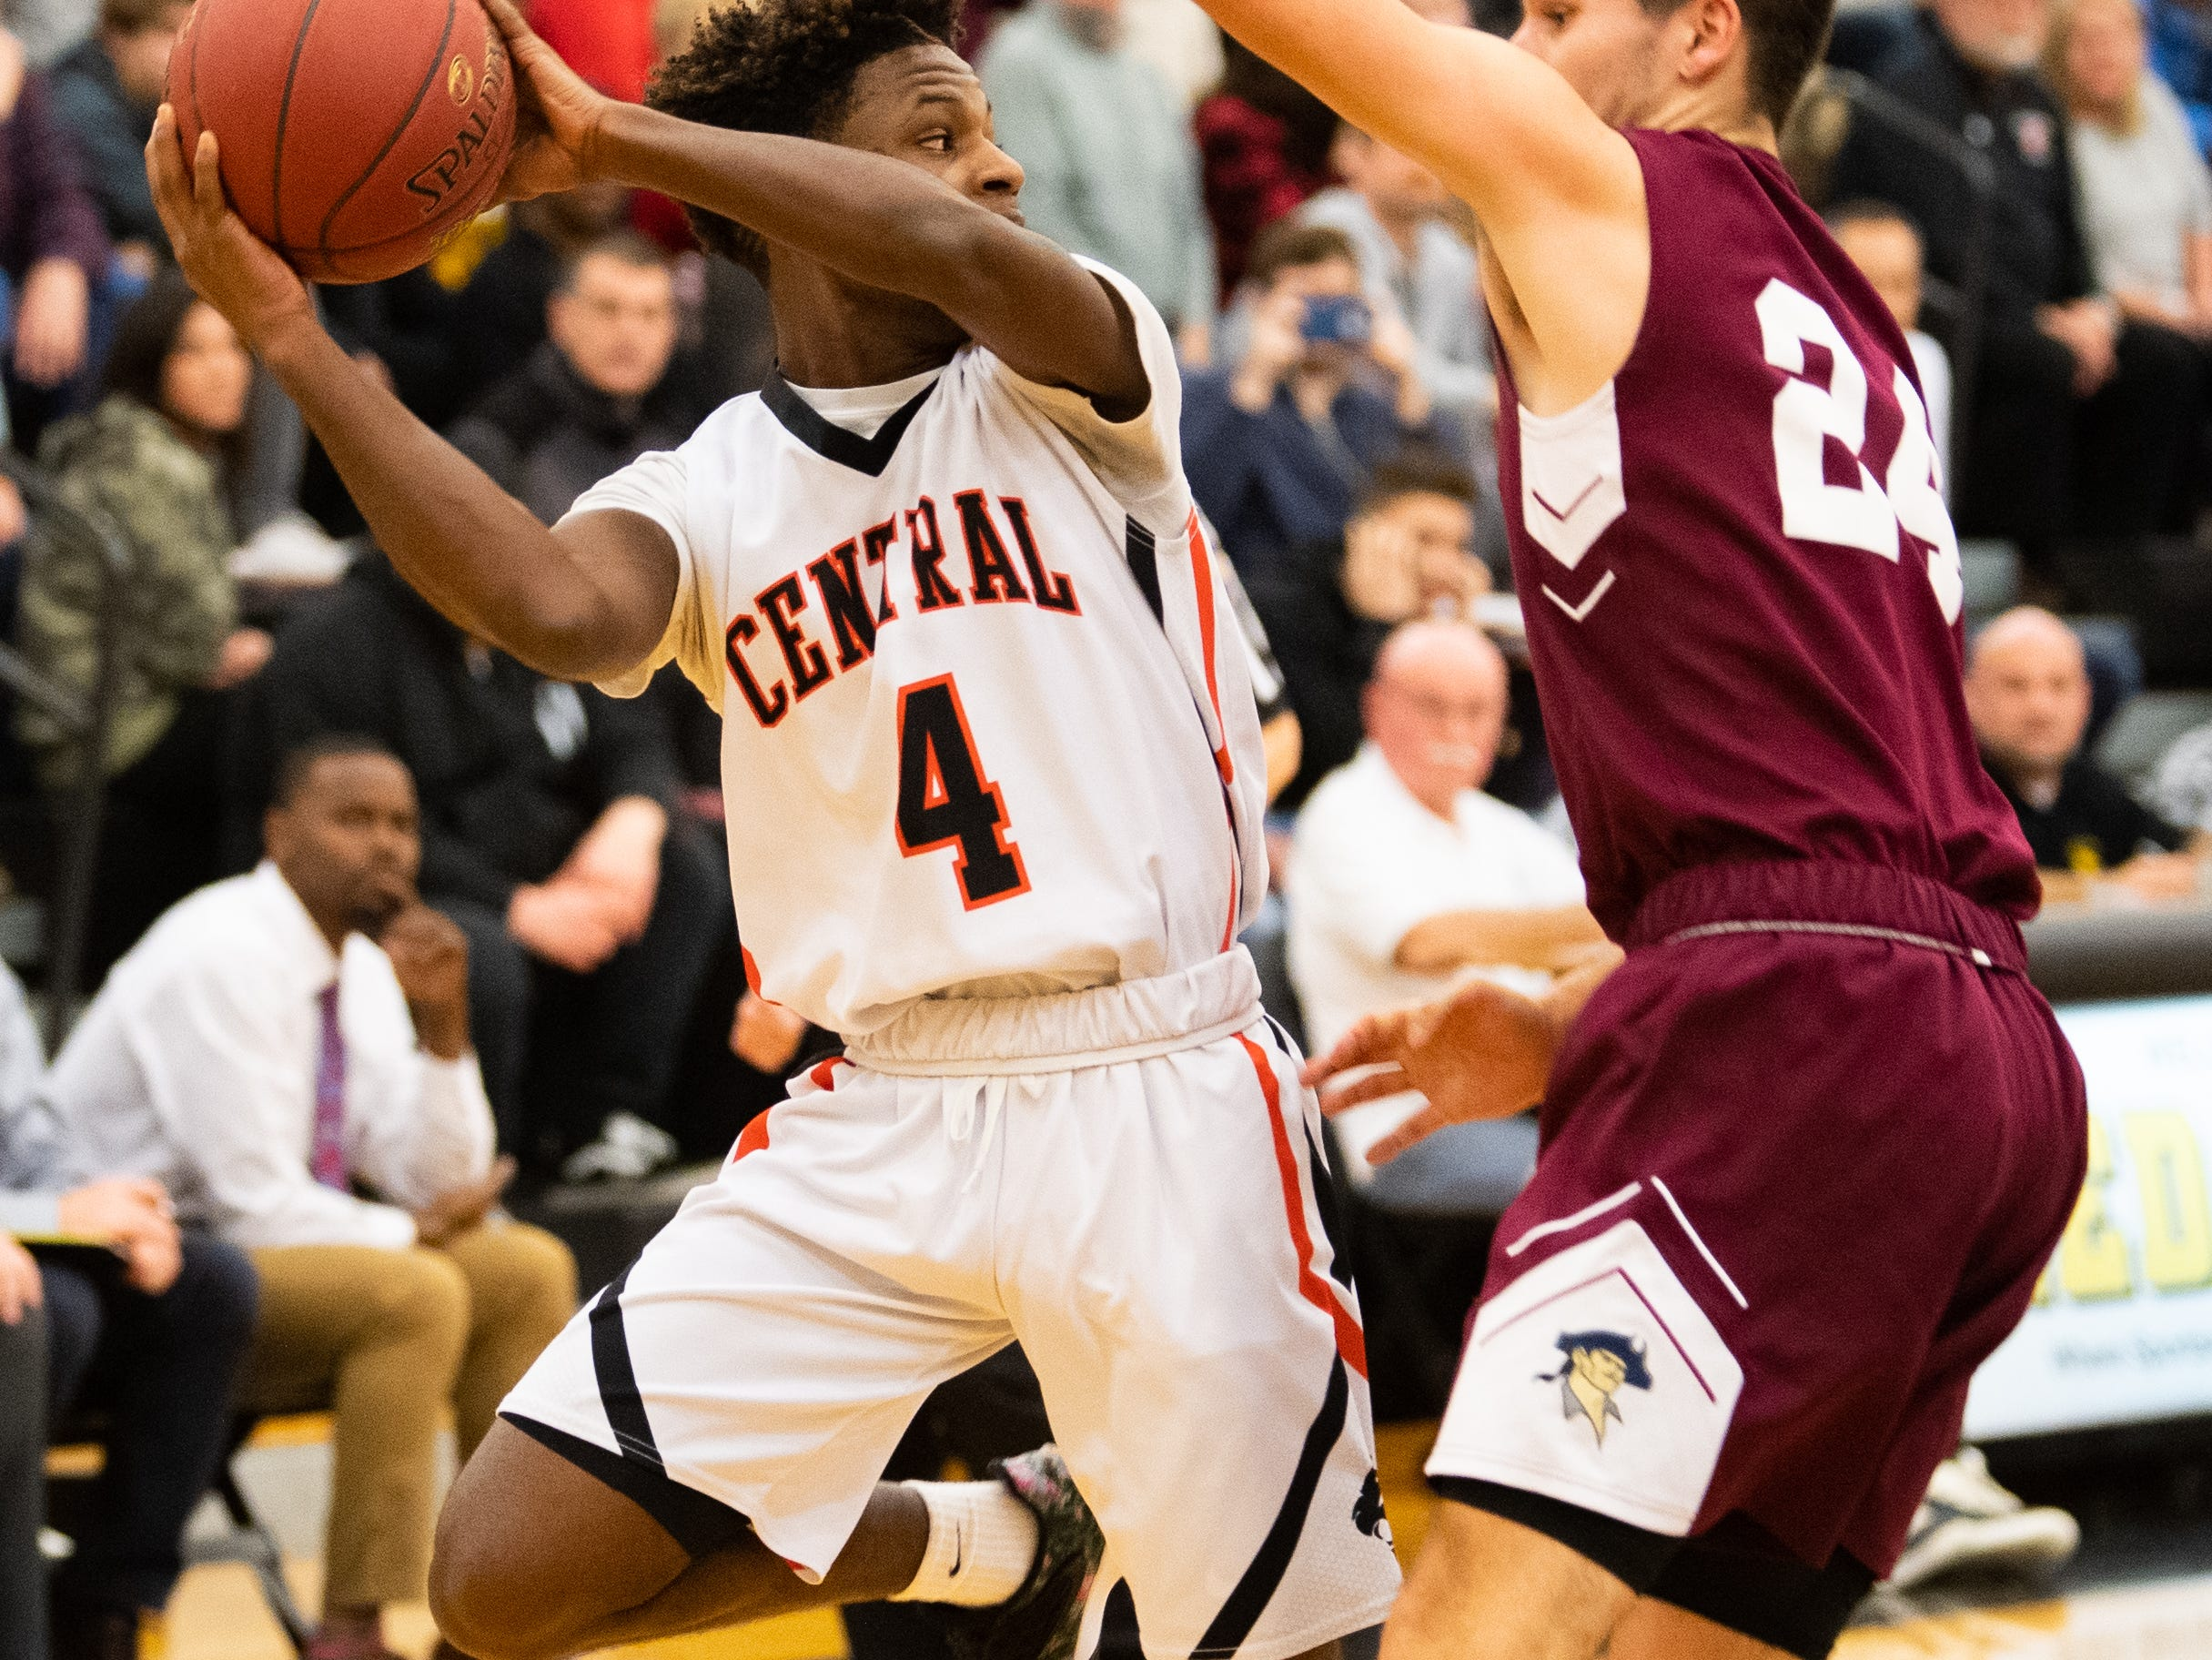 Saqhir Cornelius (4) saves the ball during the YAIAA boys' basketball semifinals between Central York and New Oxford, Wednesday, February 13, 2019 at Red Lion Area High School. The Colonials defeated the Panthers 43 to 41.